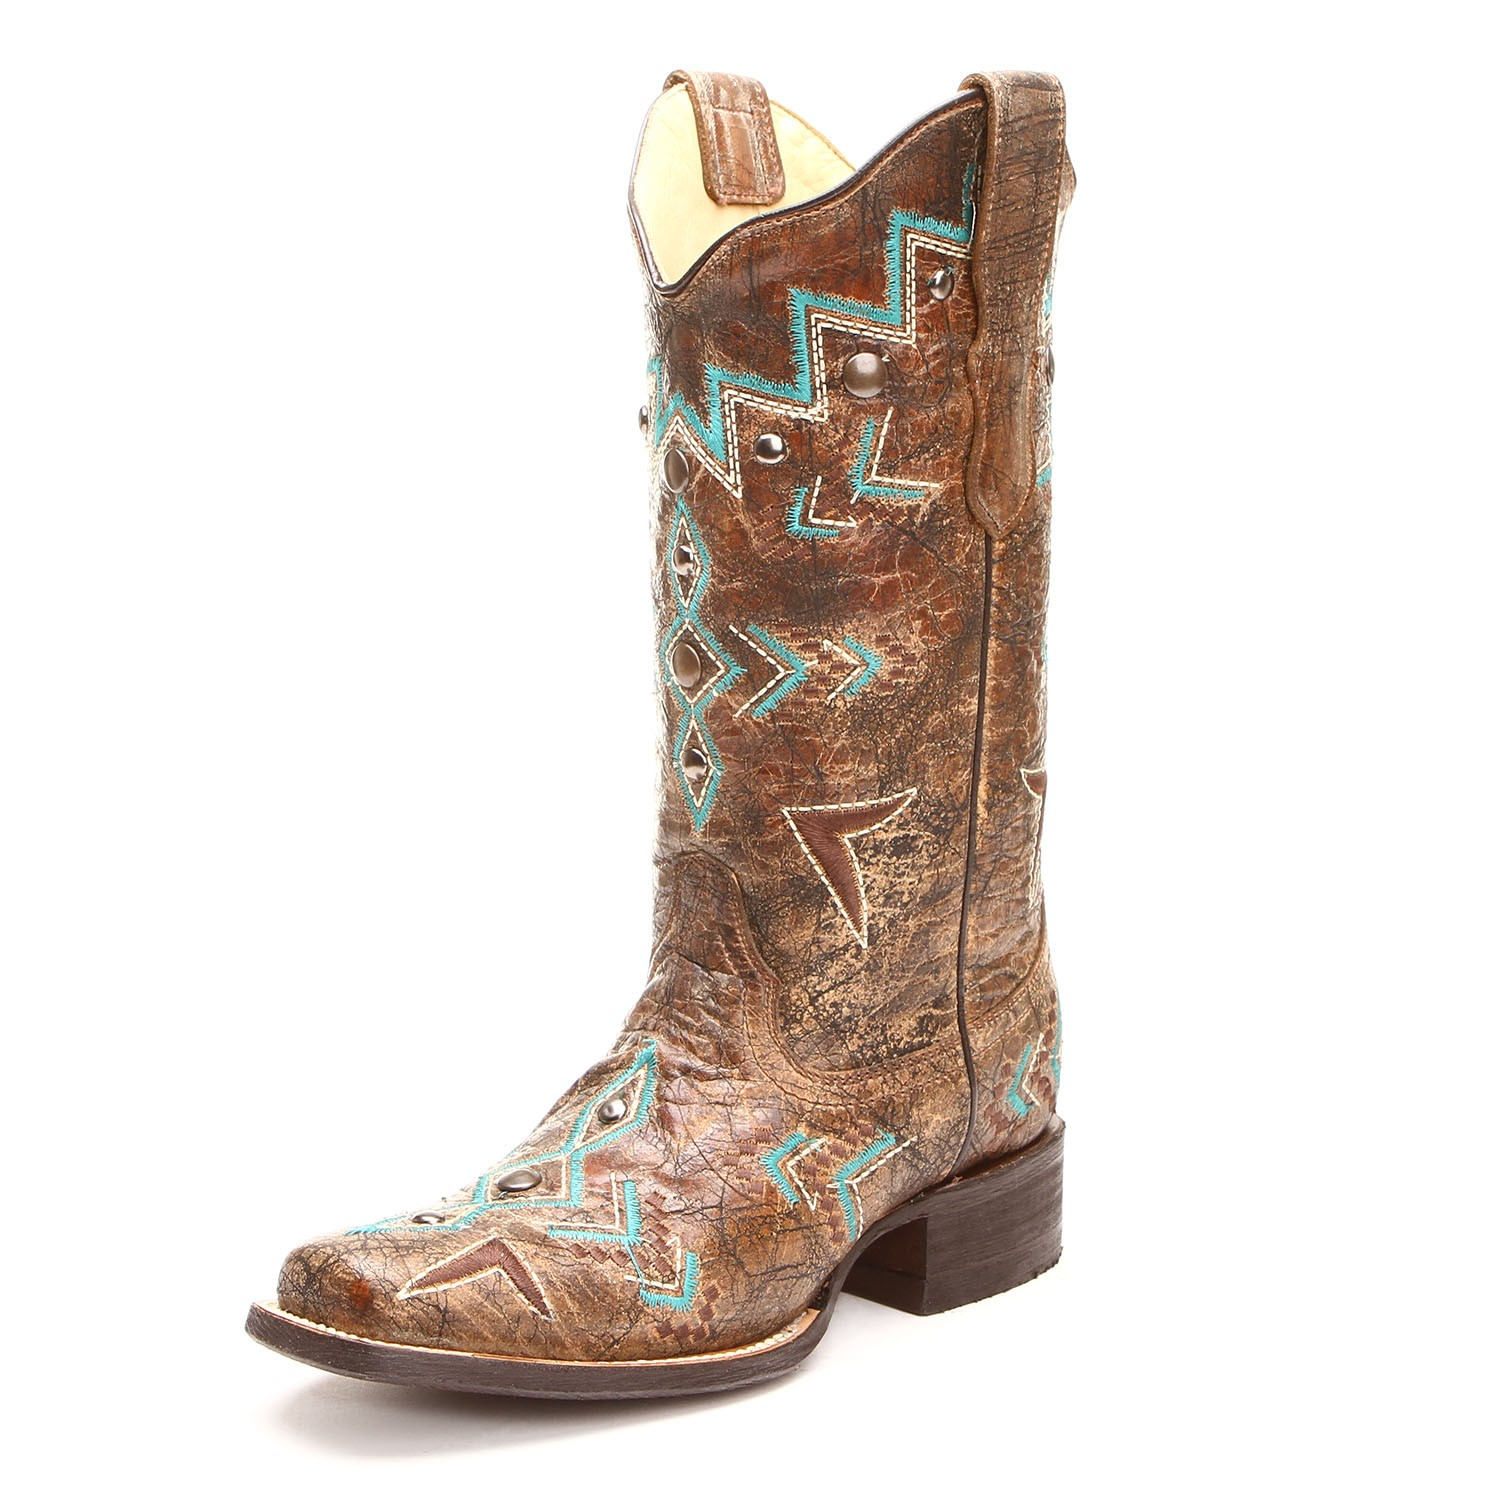 22 amazing fashion cowboy boots sobatapk